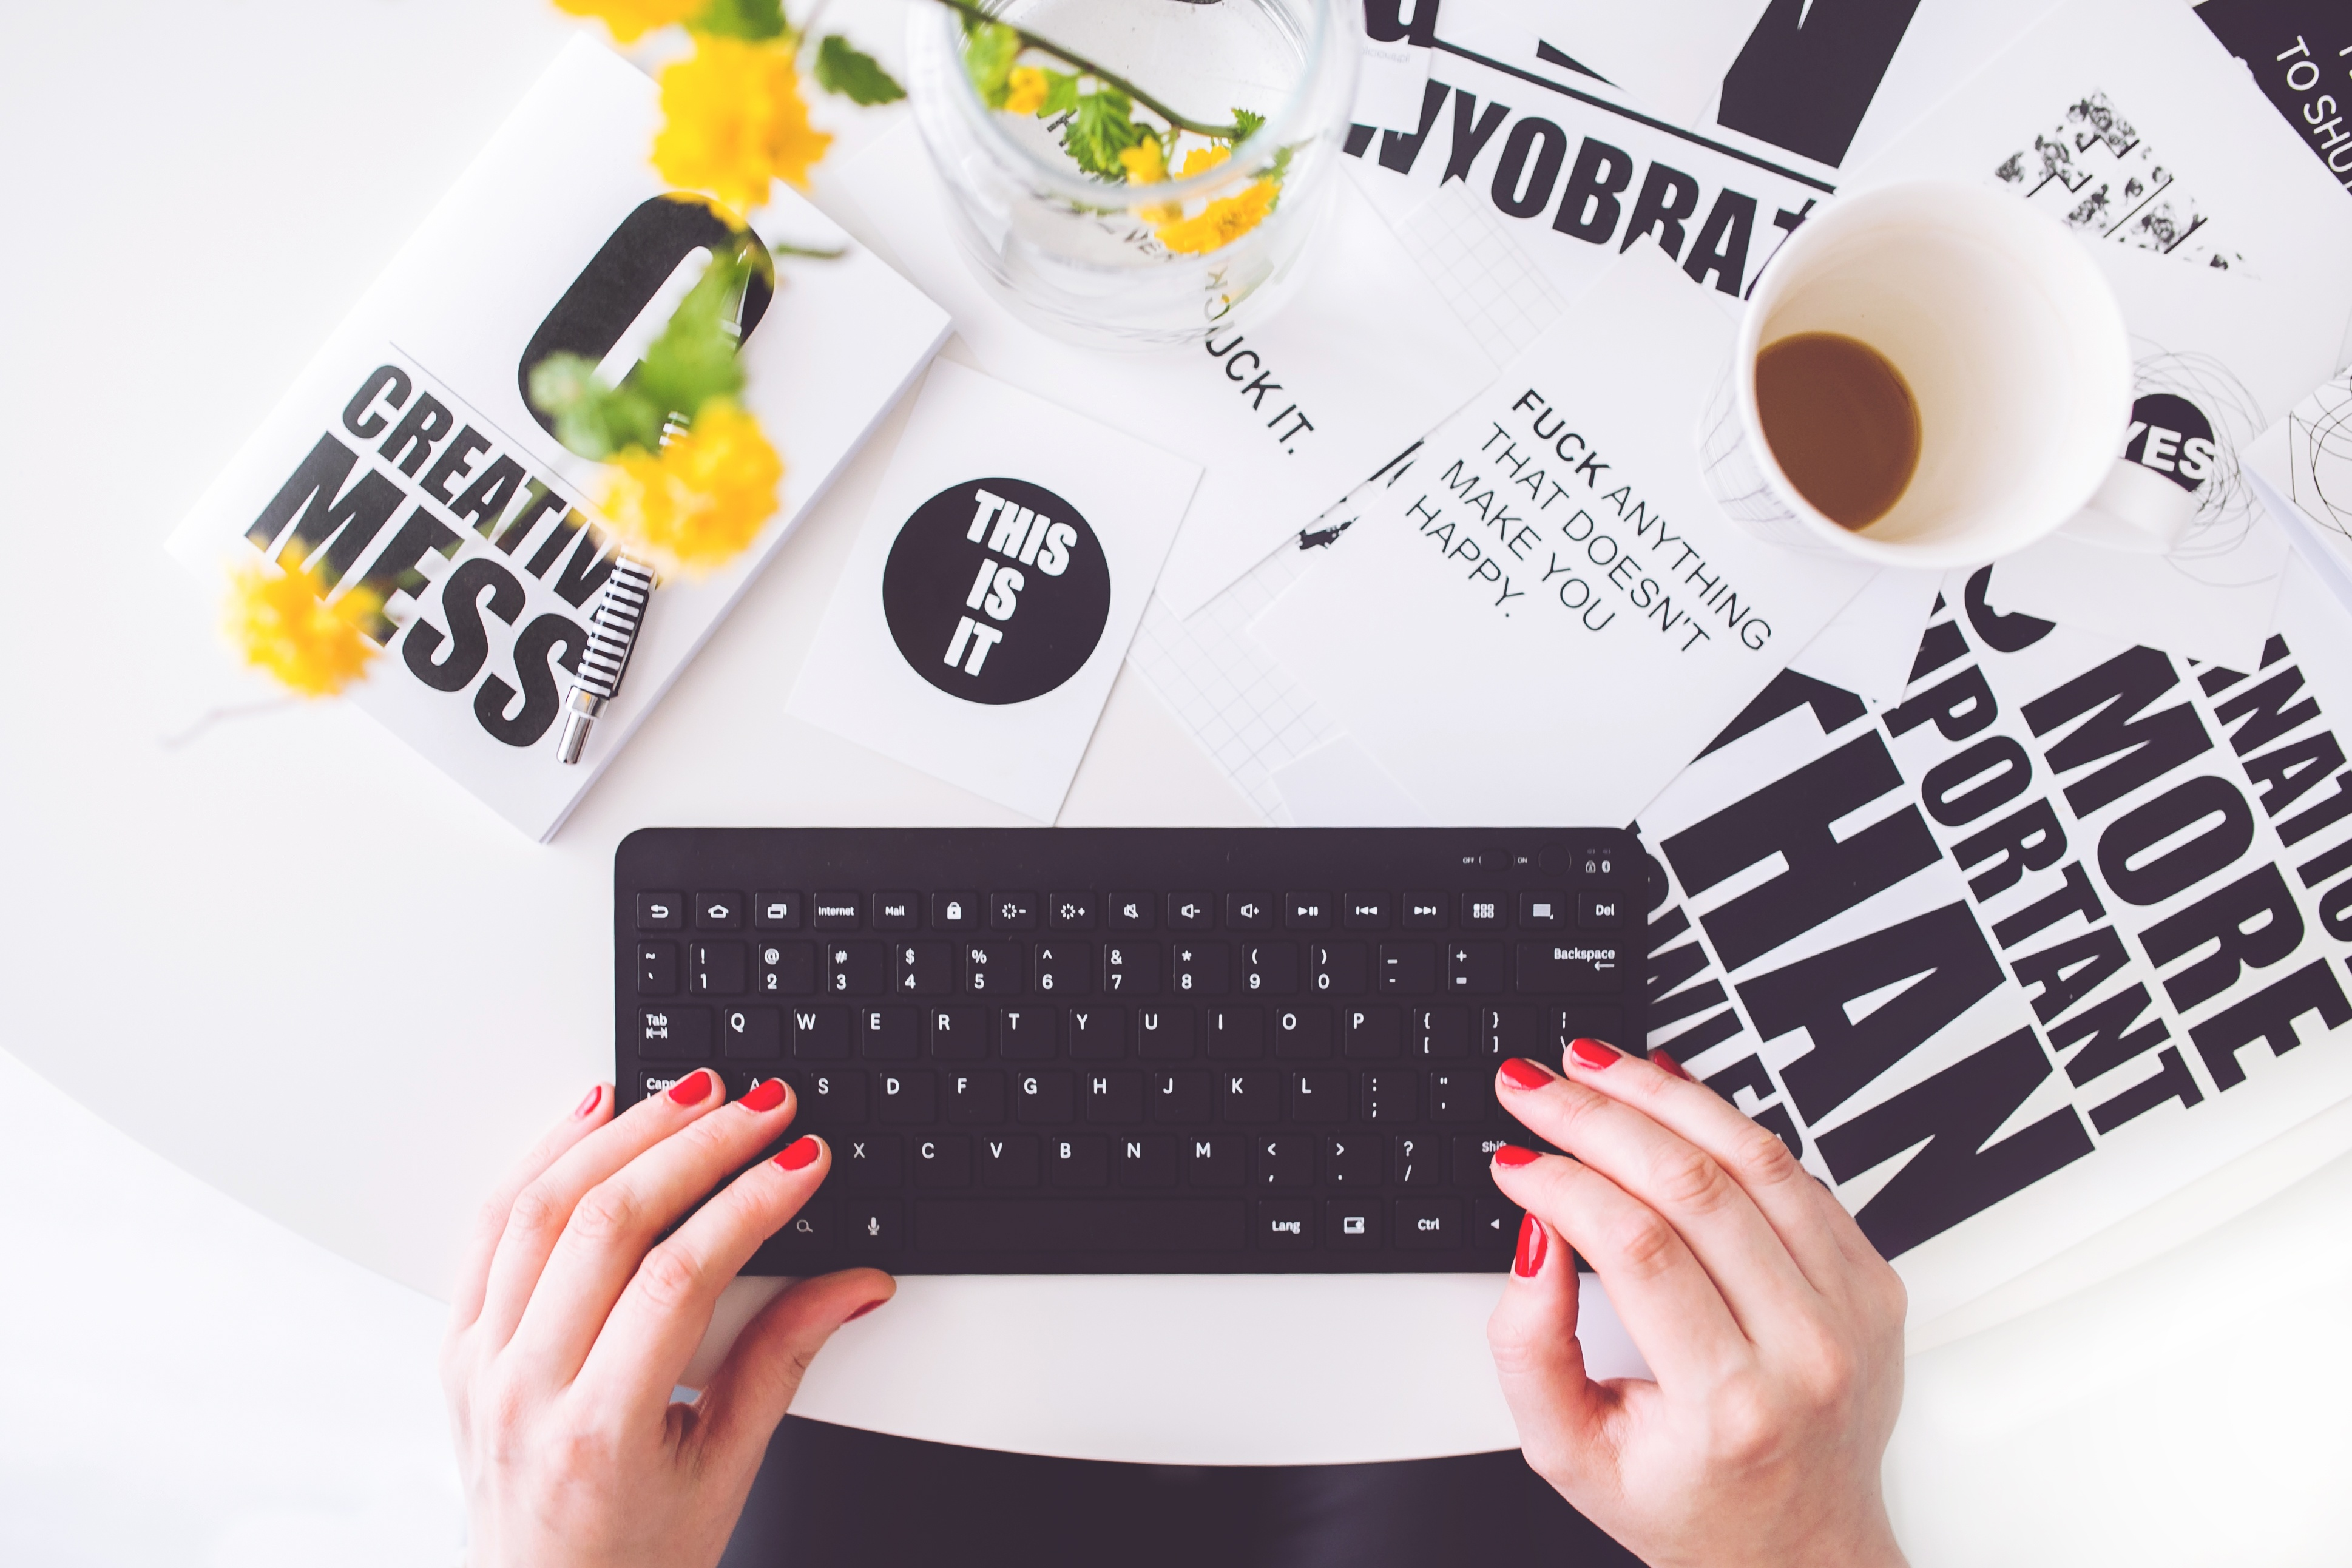 woman at keyboard surrounded by print materials illustrates article on small businesses finding and hiring freelancers